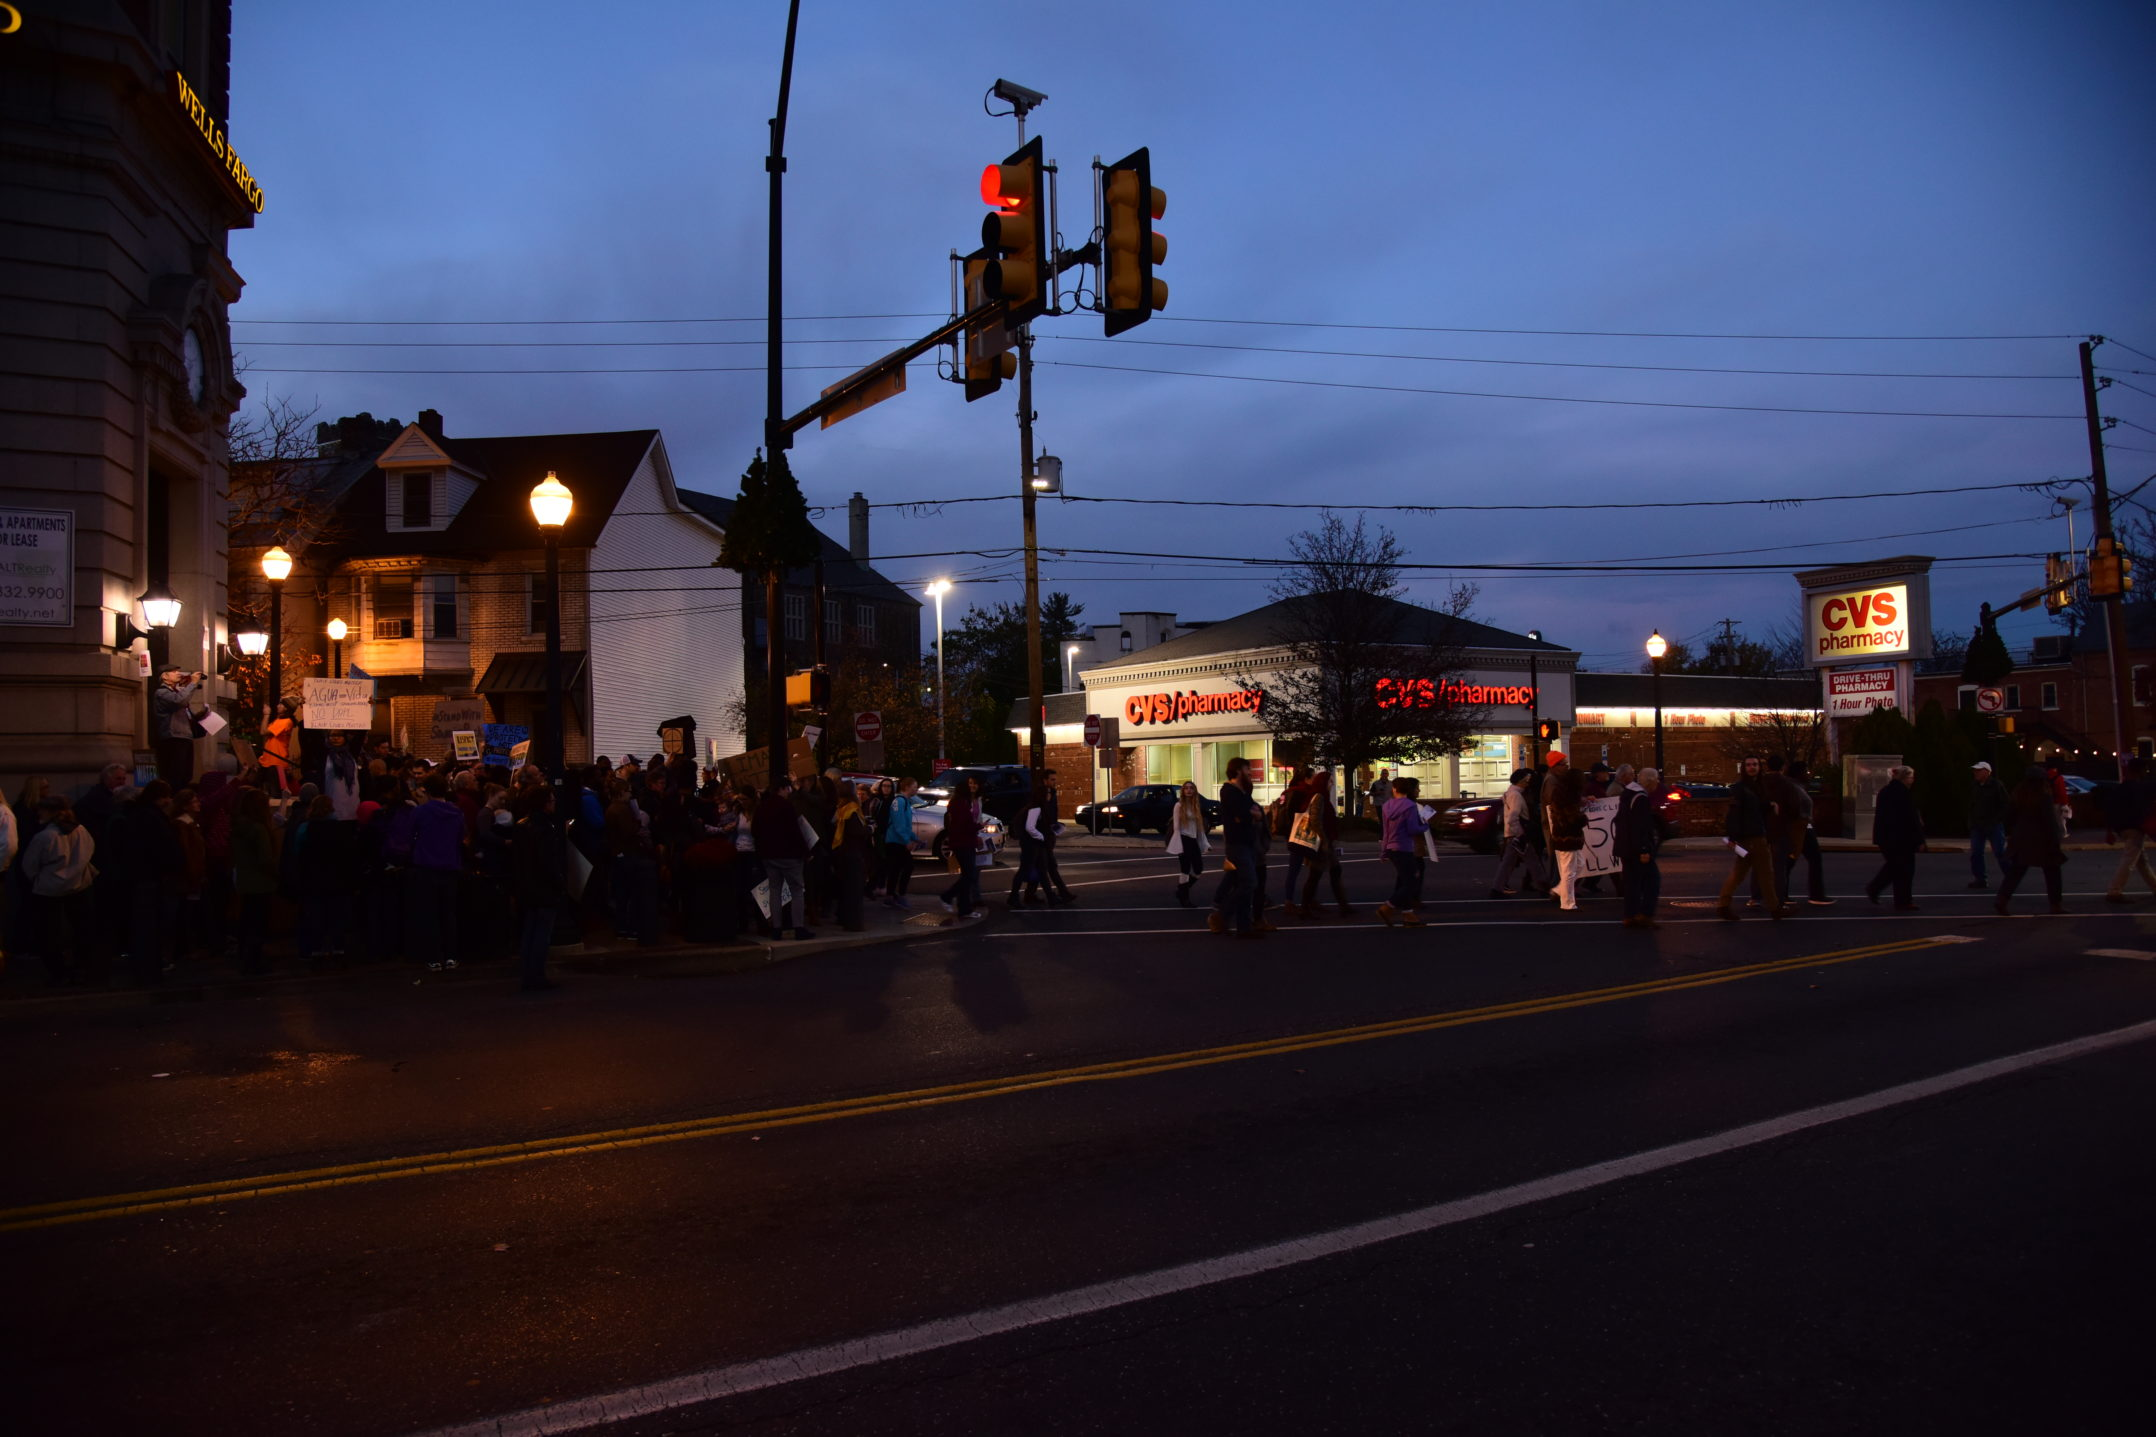 The protesters cross the street. They are headed back to campus. (Ashley Omoma/B&W Staff)